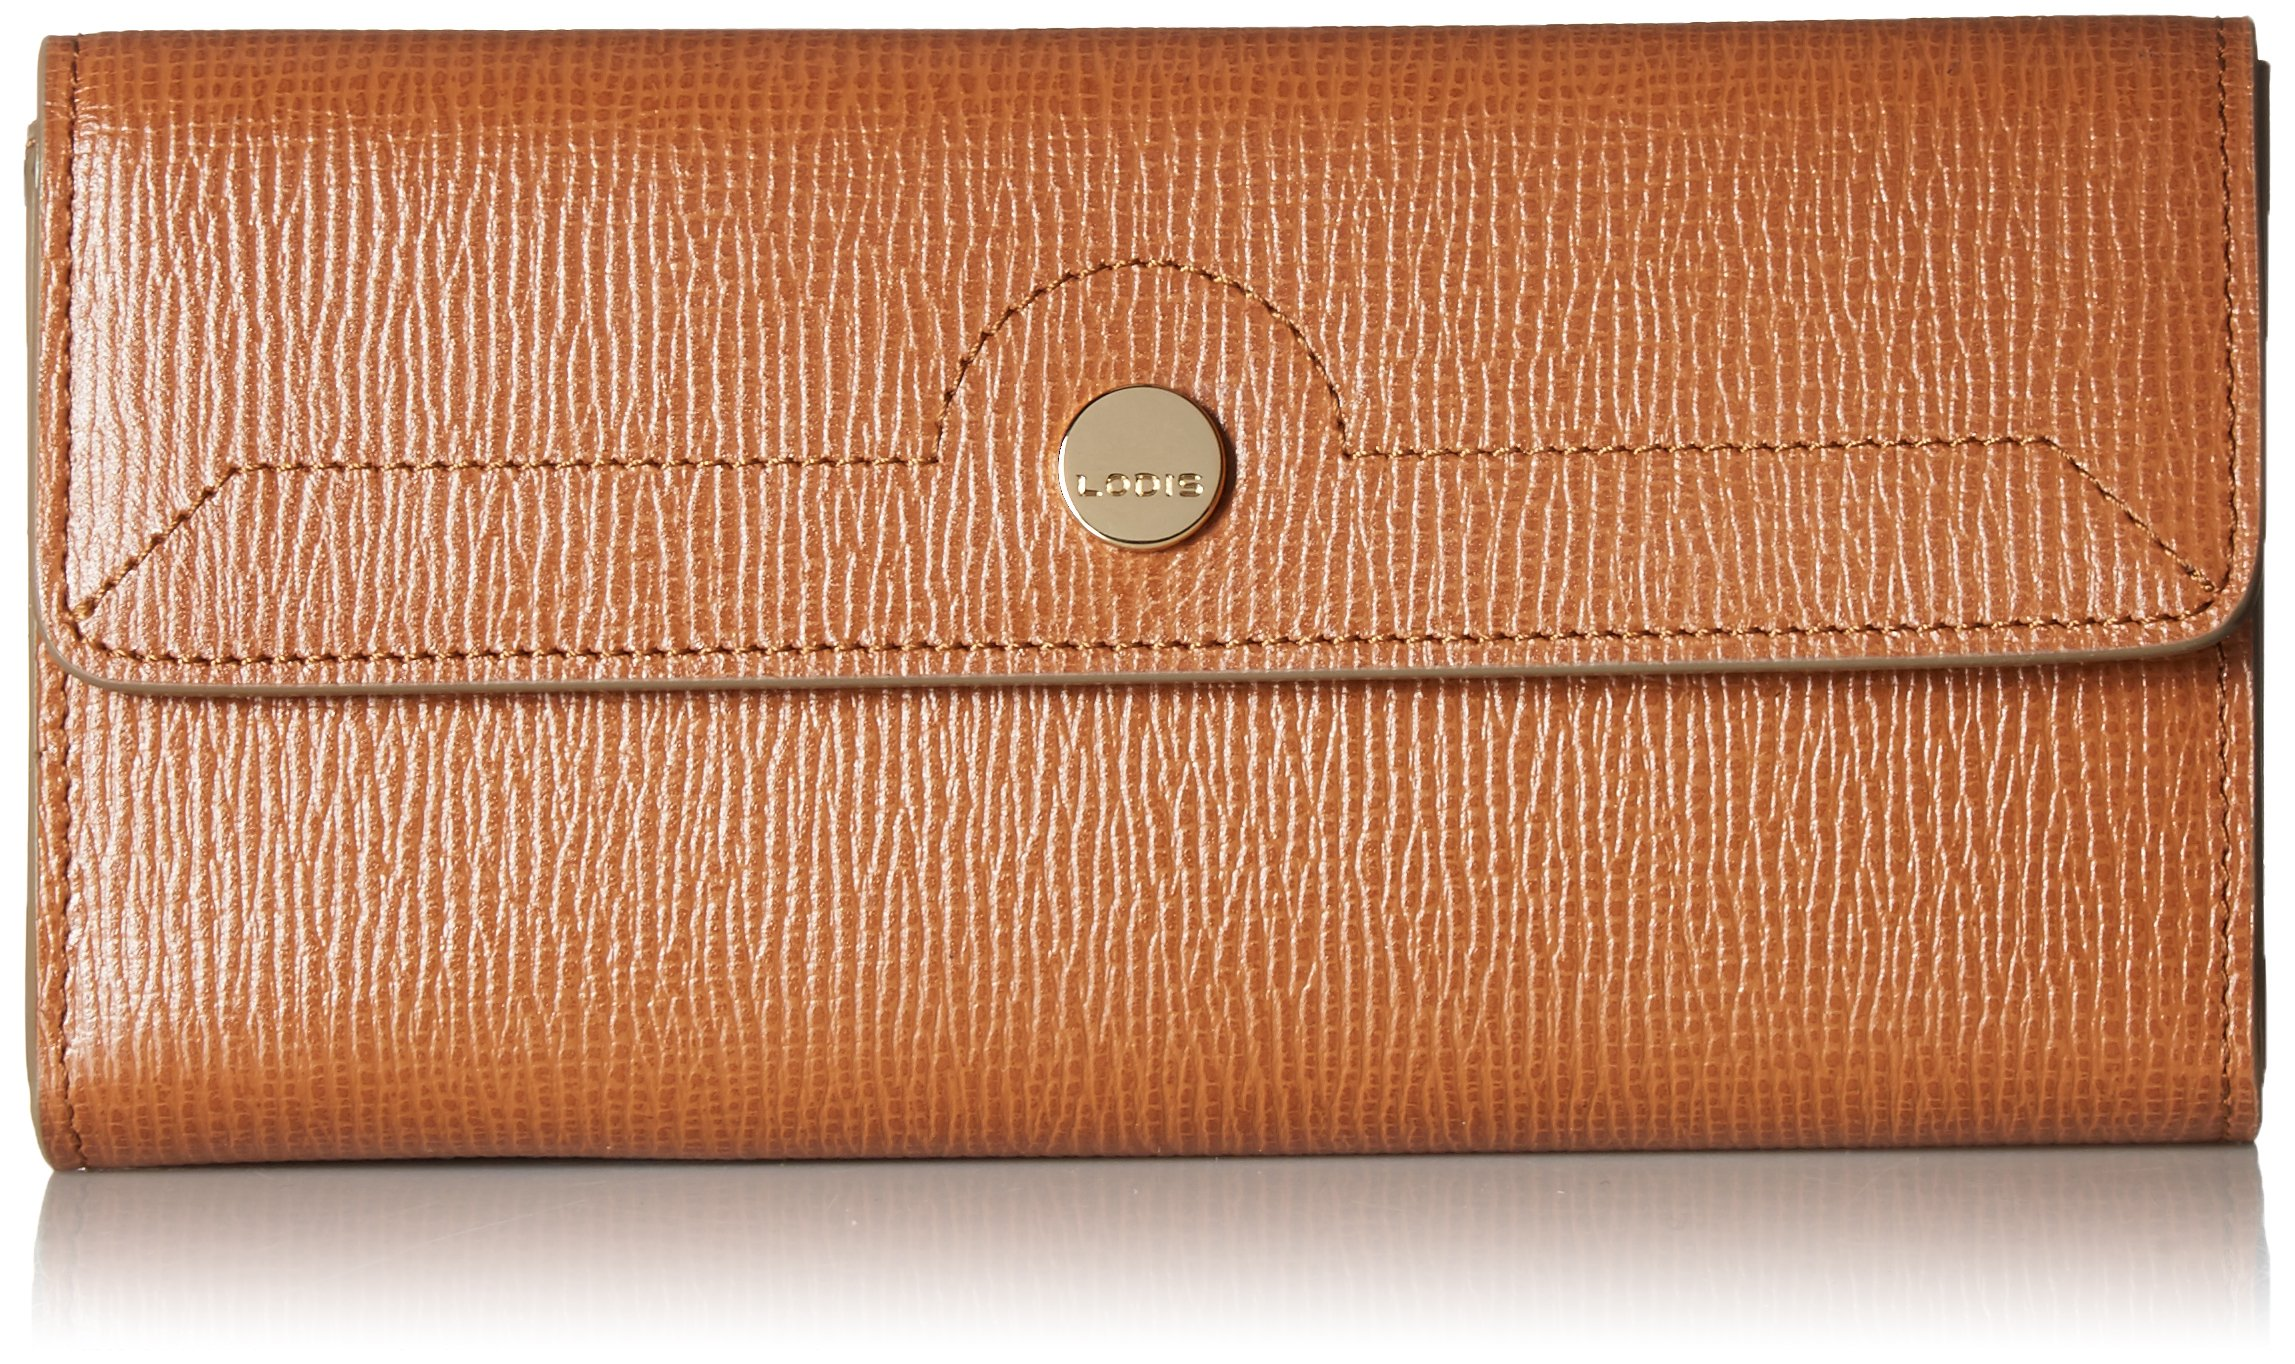 Lodis Women's Business Chic RFID Checkbook Clutch Cover, caramel One Size by Lodis